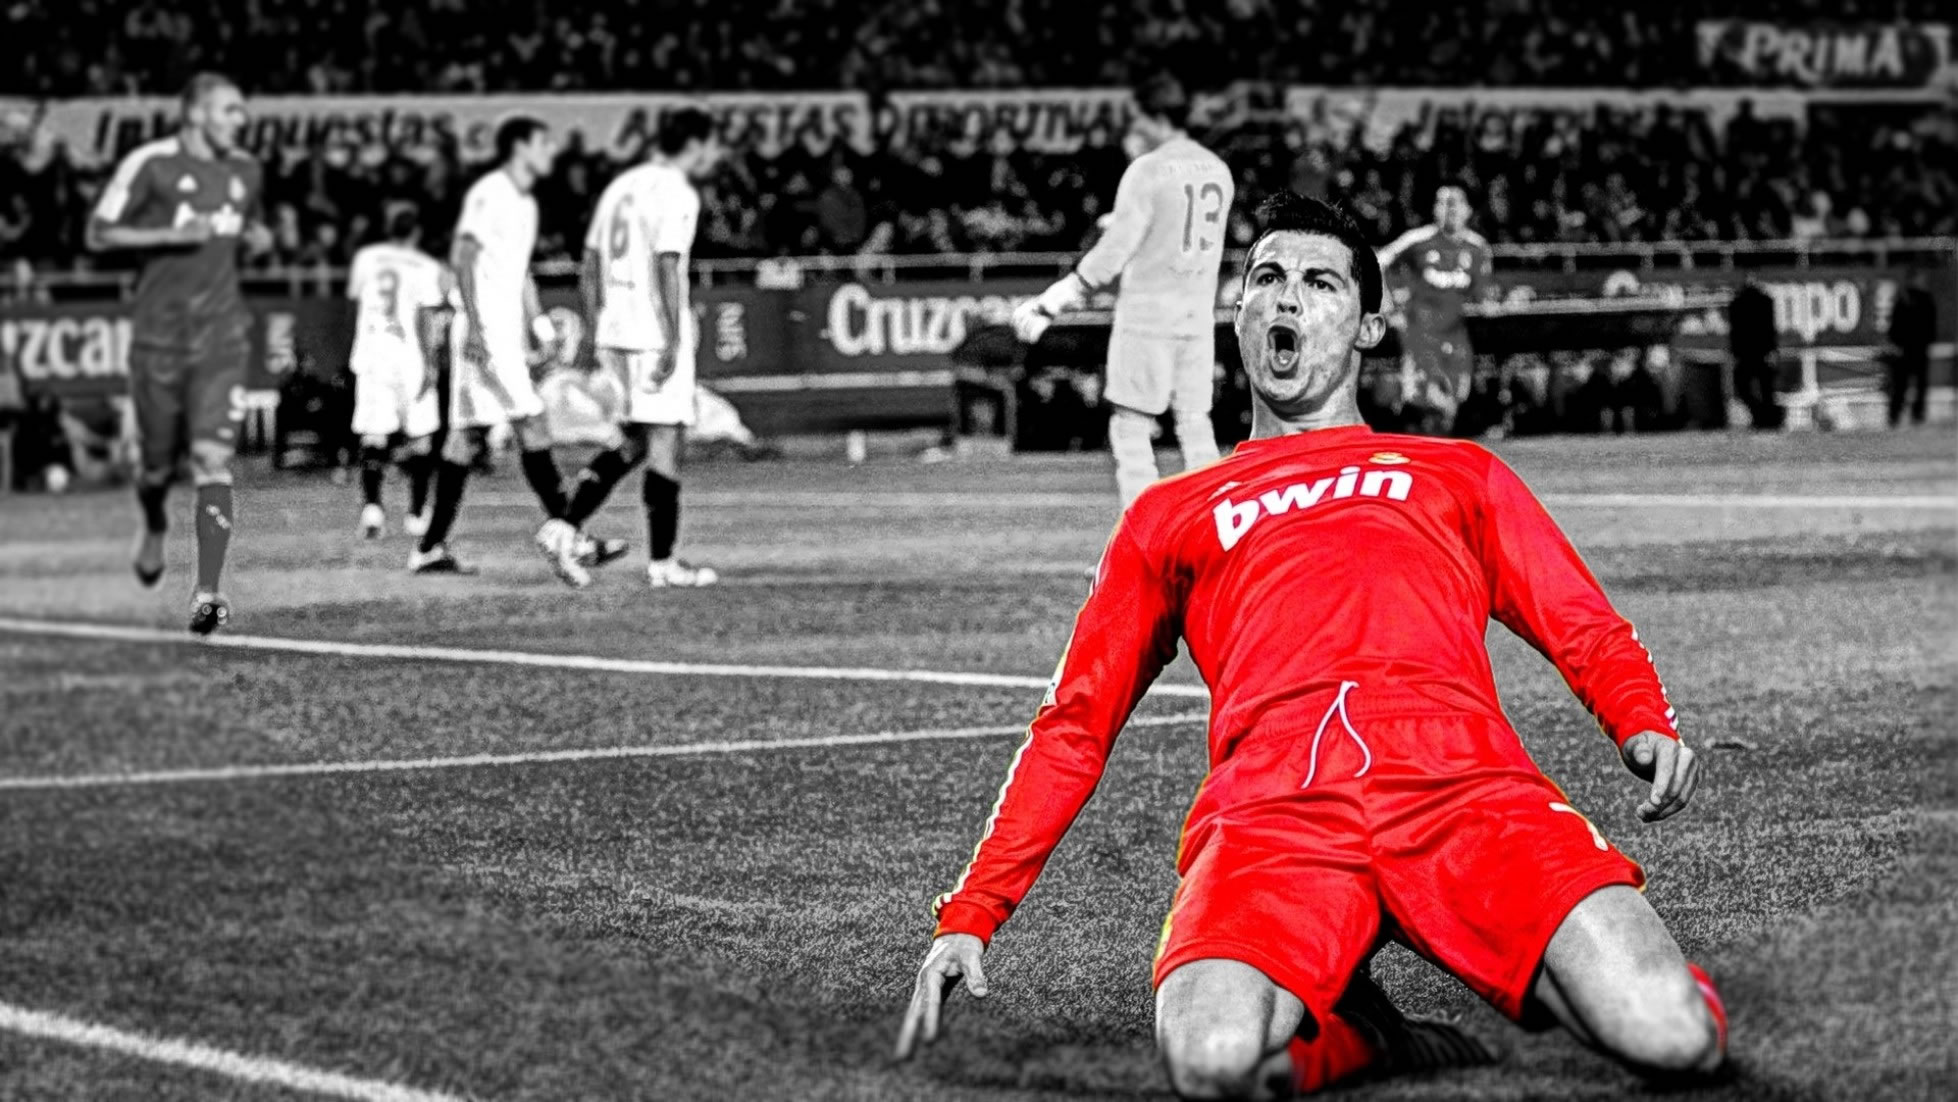 Cristiano Ronaldo goal celebration wallpaper